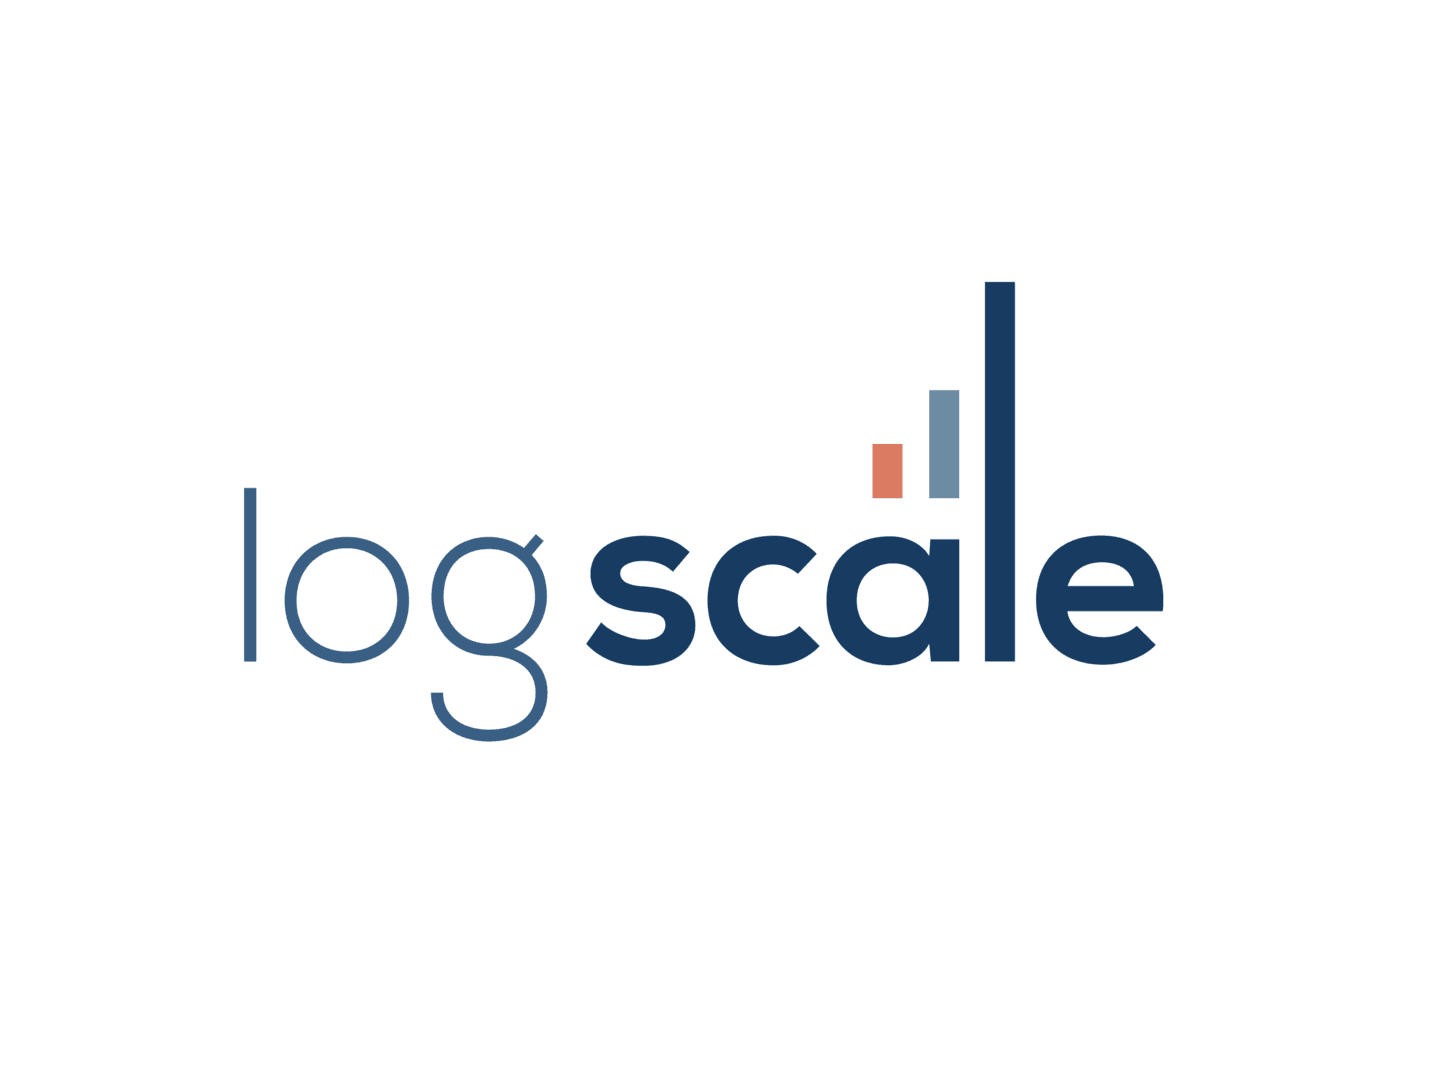 logscale - Your Partner for Supply Chain Compliance